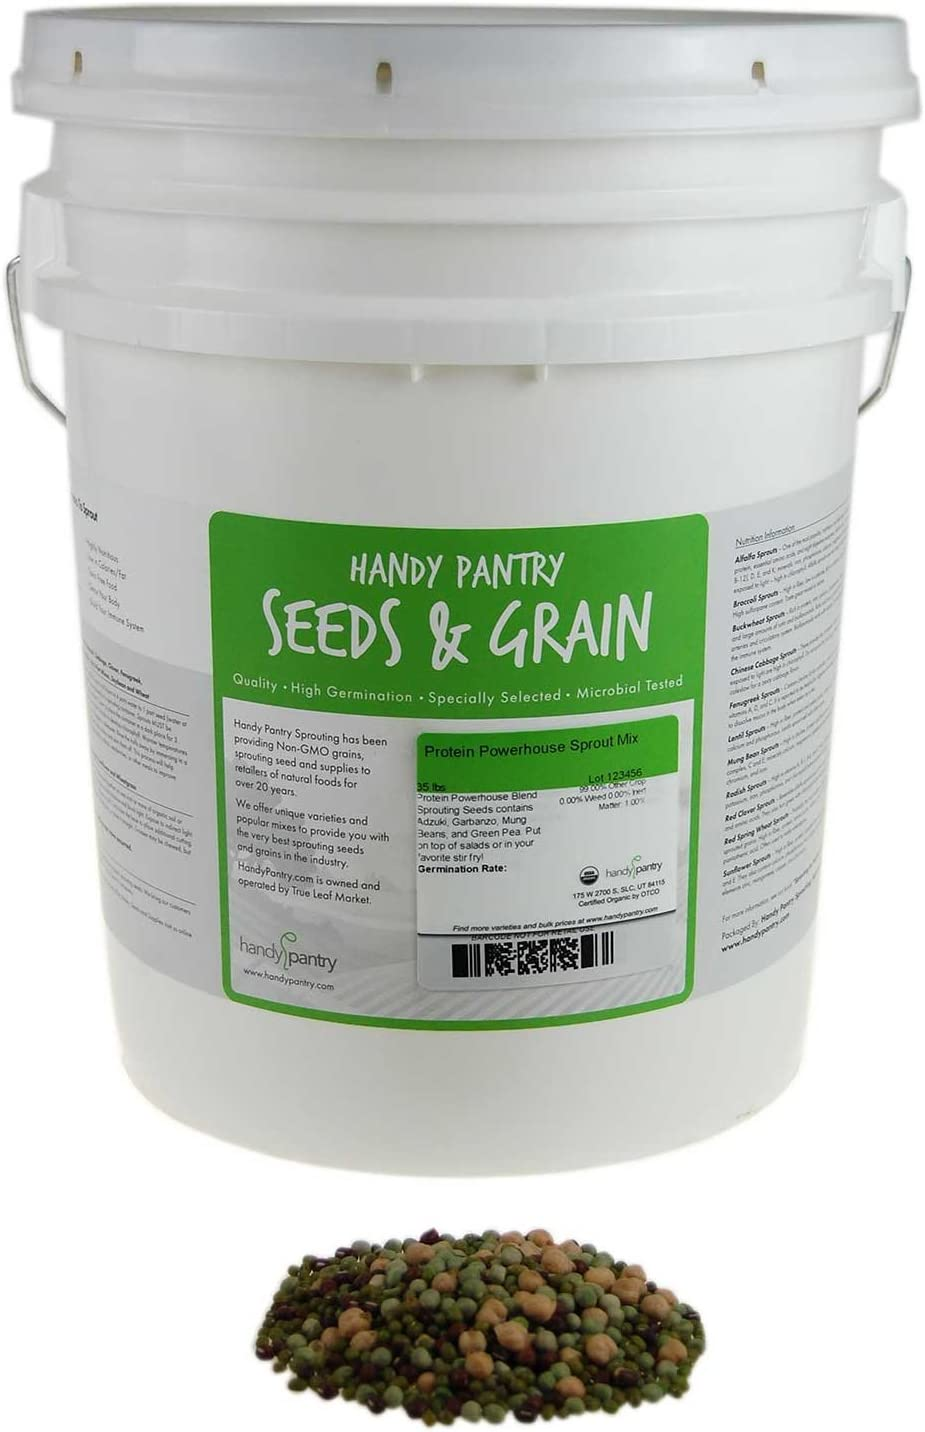 Handy Pantry Protein Powerhouse Sprouting Seed Mix: 35 Lb - Organic, Non-GMO - Sprouting Sprouts, Food Storage. High Protien Sprouts - Pea, Mung, Green Pea, Adzuki